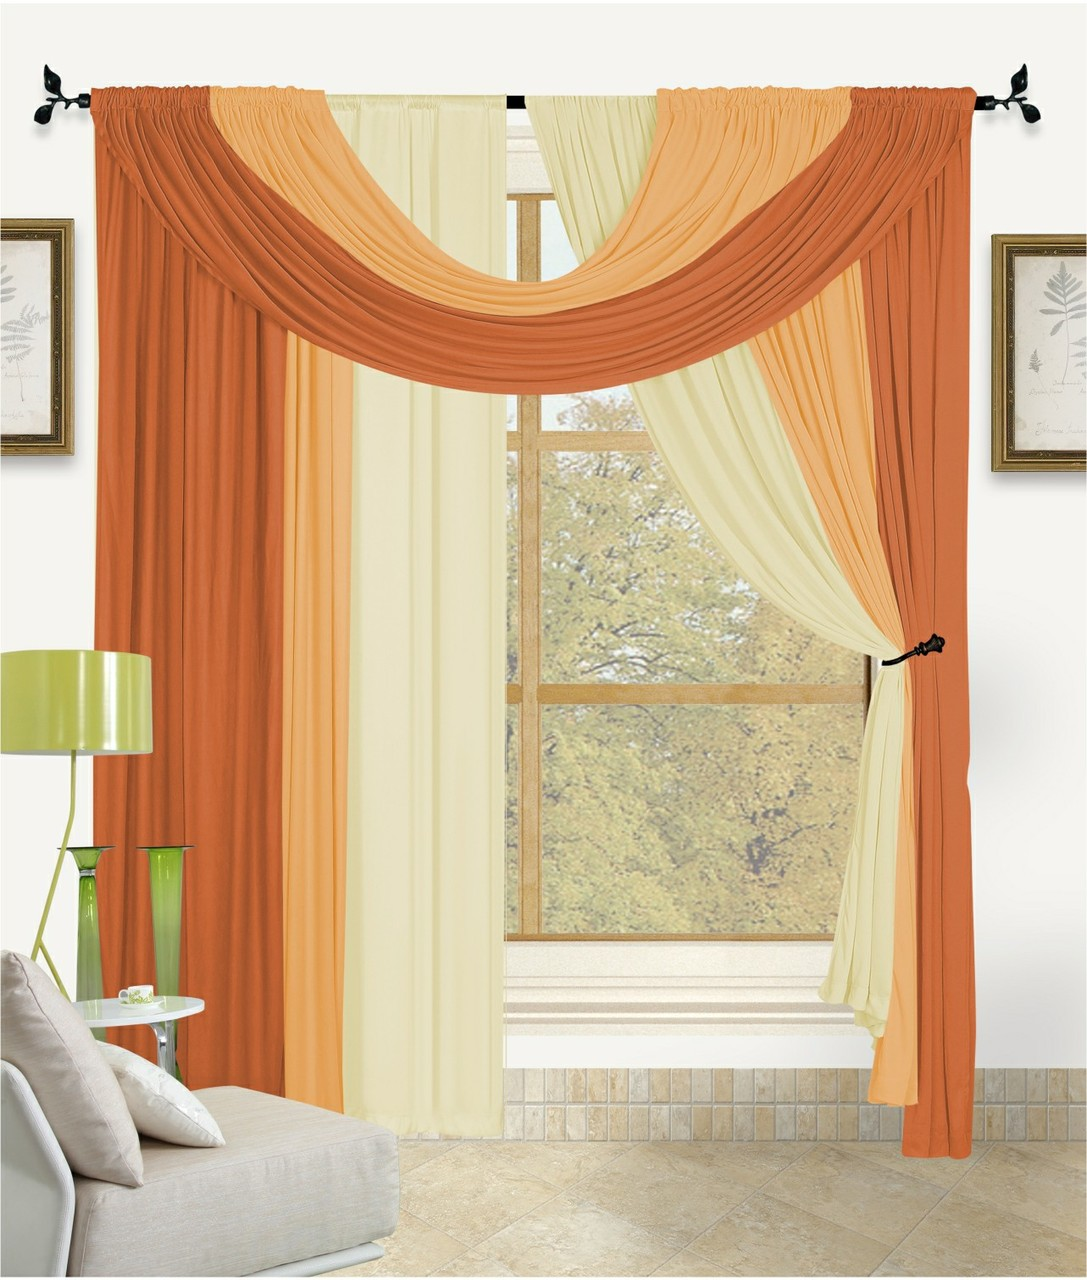 Bella 4 Piece Complete Window Treatment in A Bag Set, 2 Panels, Small Scarf, Large Scarf Solid Color (Orange) by Kashi Home